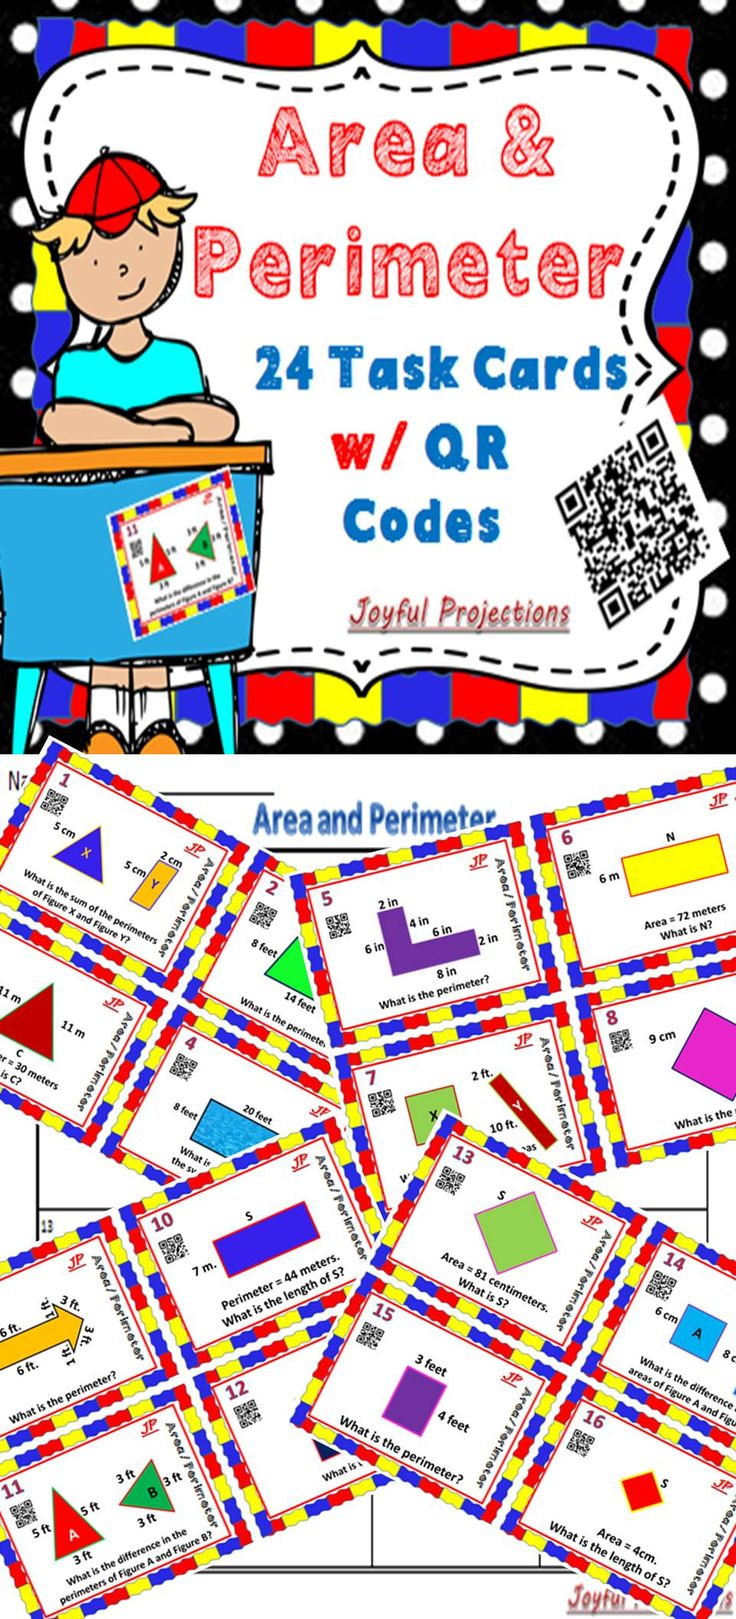 Use cards as task cards for early finishers, scoot them from one student to another, or use as a quiz. Students will multiply to find area, add to find the perimeter, or the sum of 2 areas or perimeters, subtract to find the difference between 2 areas or perimeters, and add and subtract to find missing sides in a given shape. Students can check their own answers using the QR codes!  A great review of Area and Perimeter!